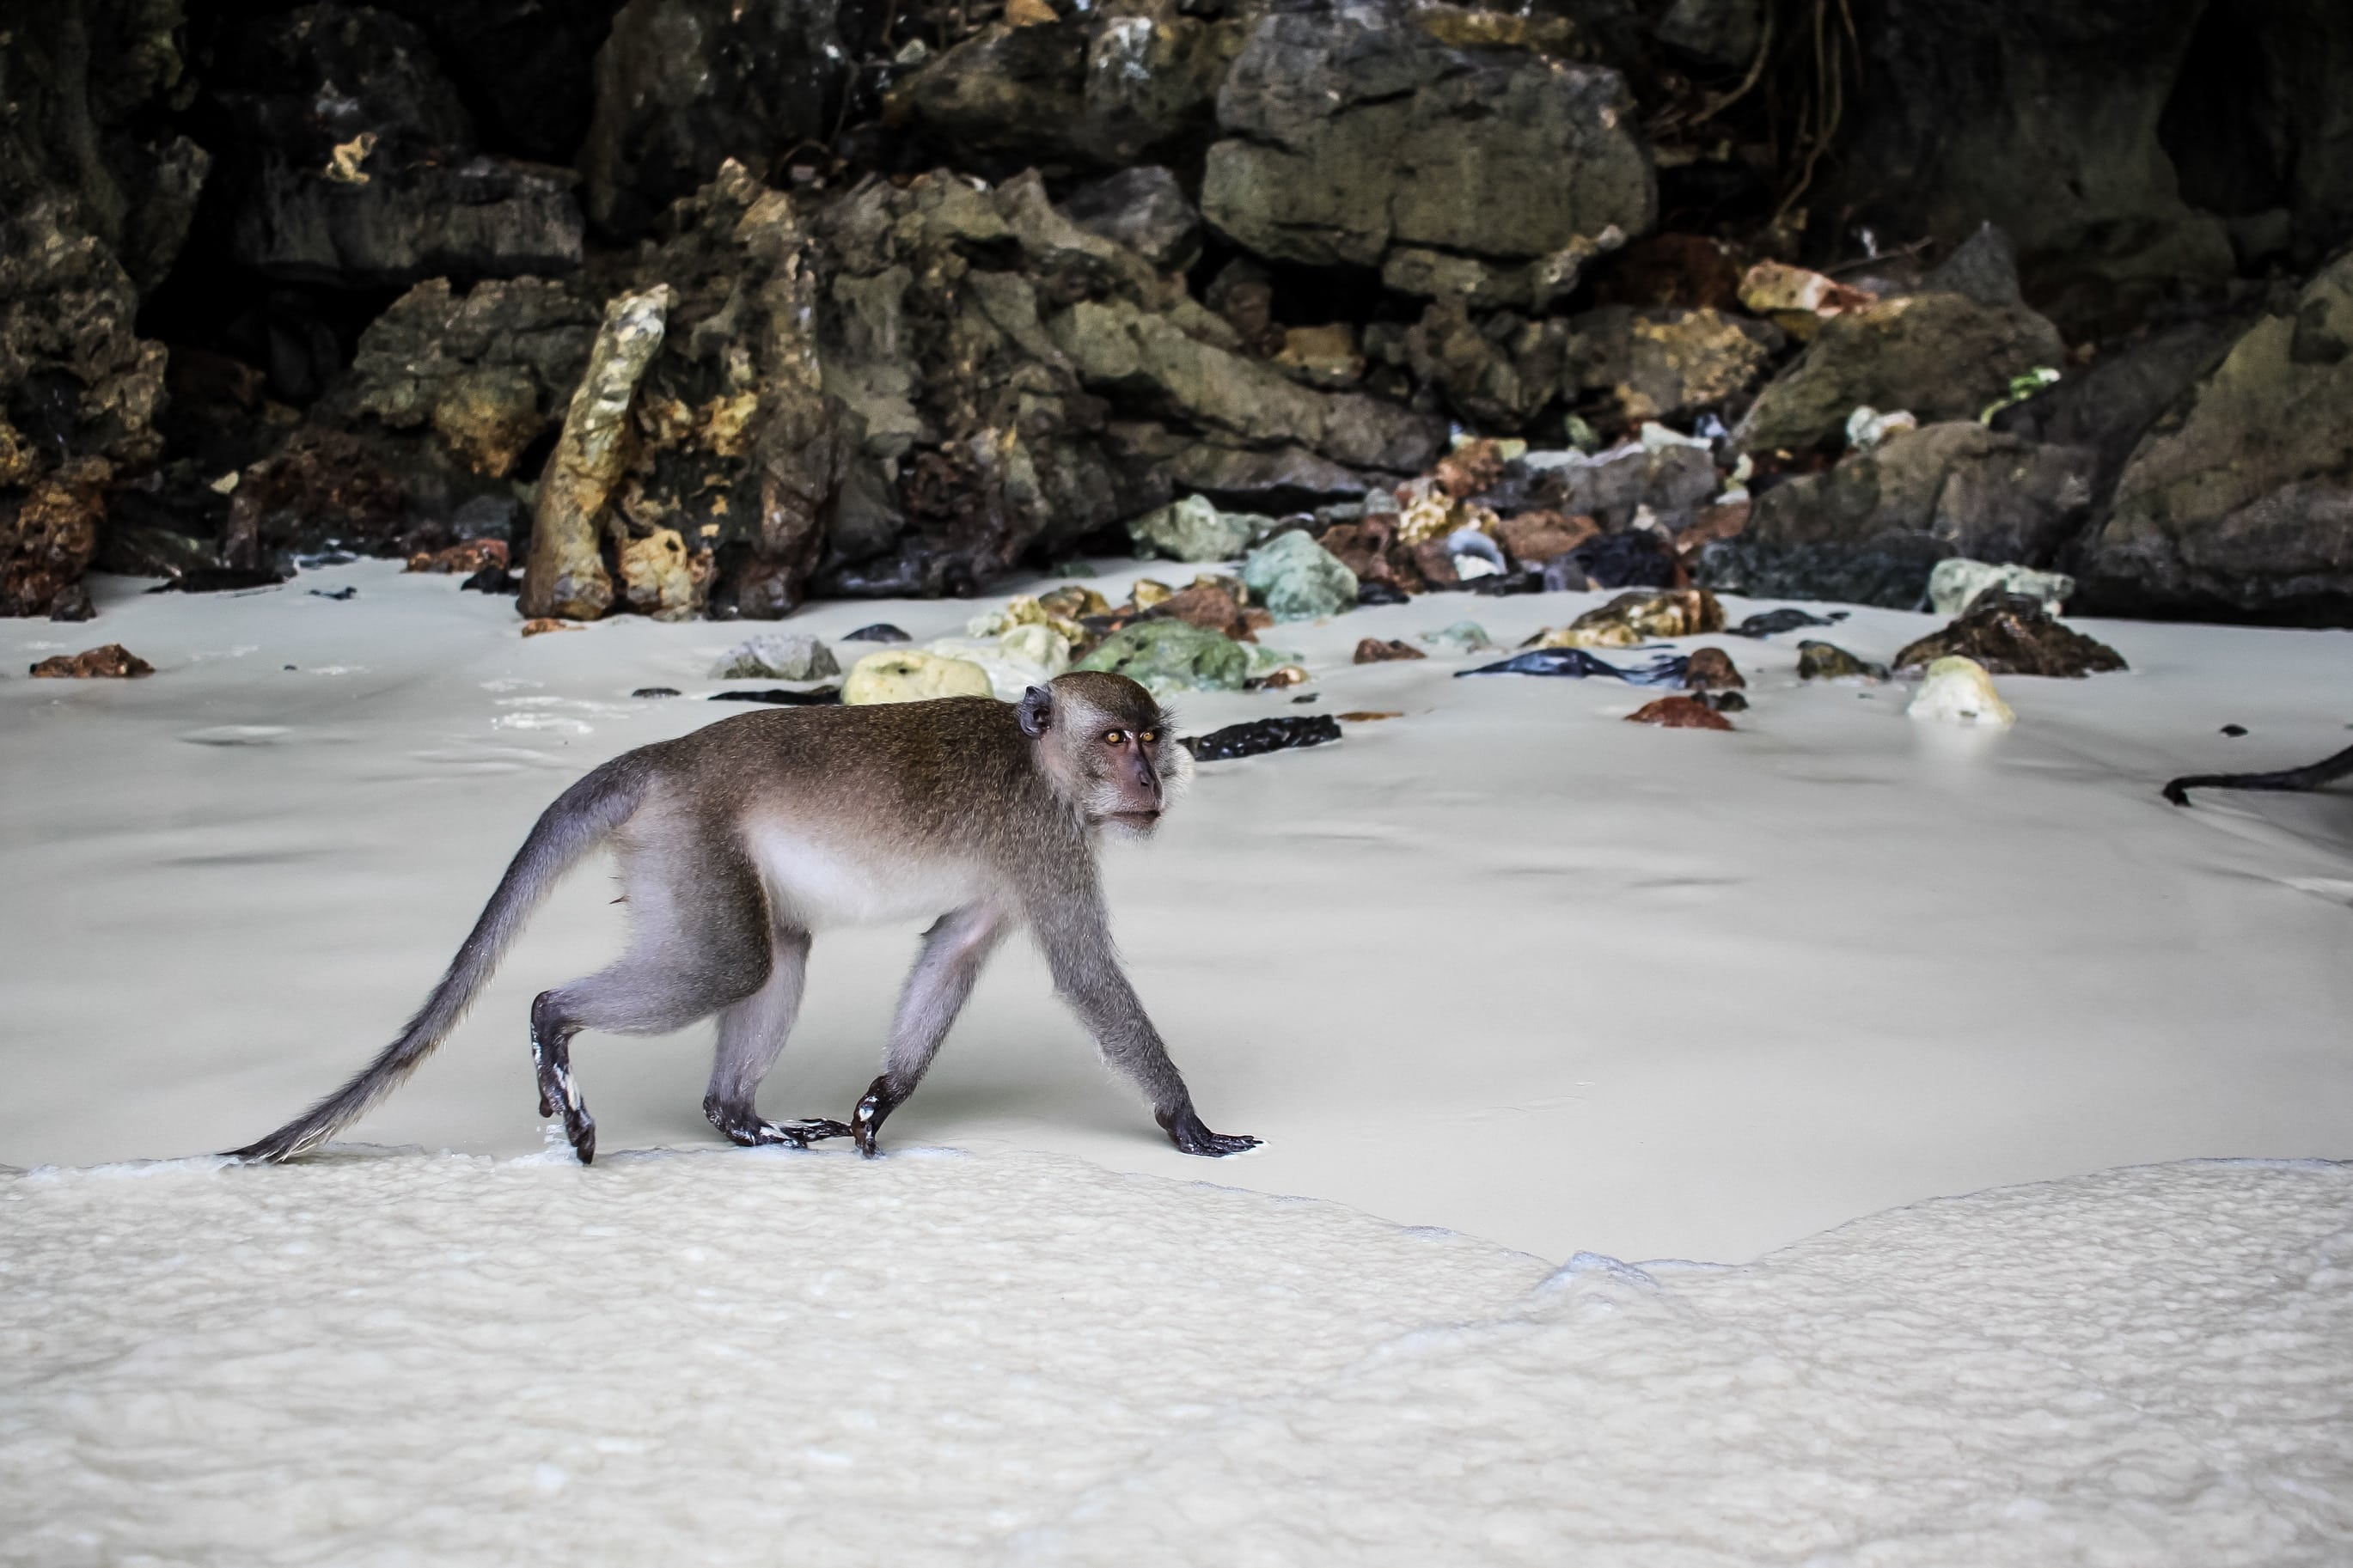 monkey beach phi phi, monkey beach thailand, monkey island phuket, monkeys in phuket, snorkeling koh phi phi, monkey beach koh phi phi, where to stay phi phi